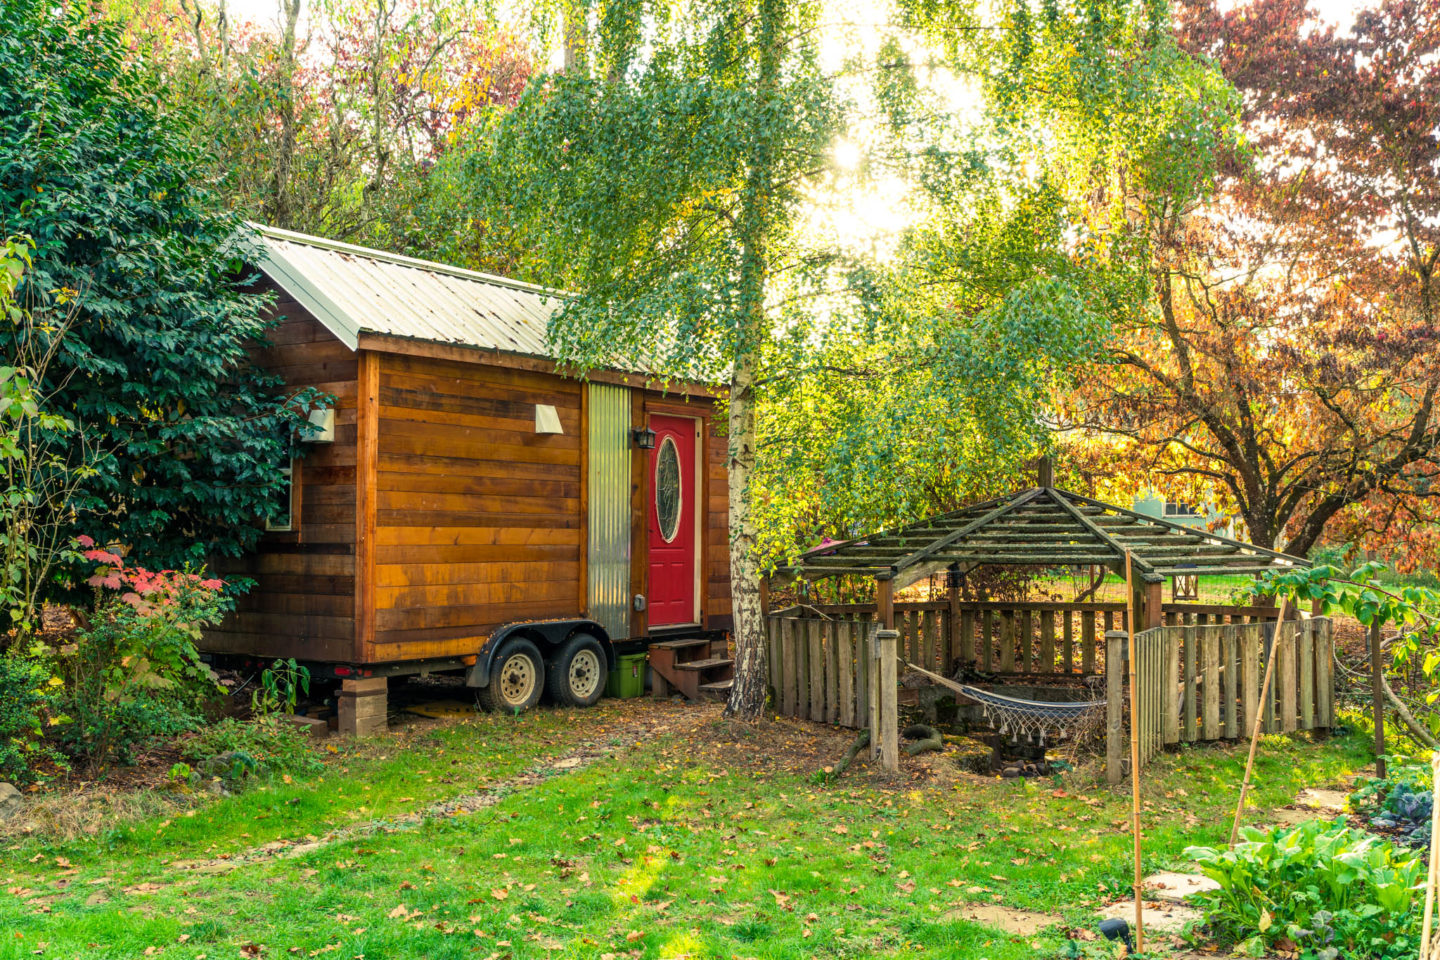 Tiny House Community Celebrates 1 Year Anniversary